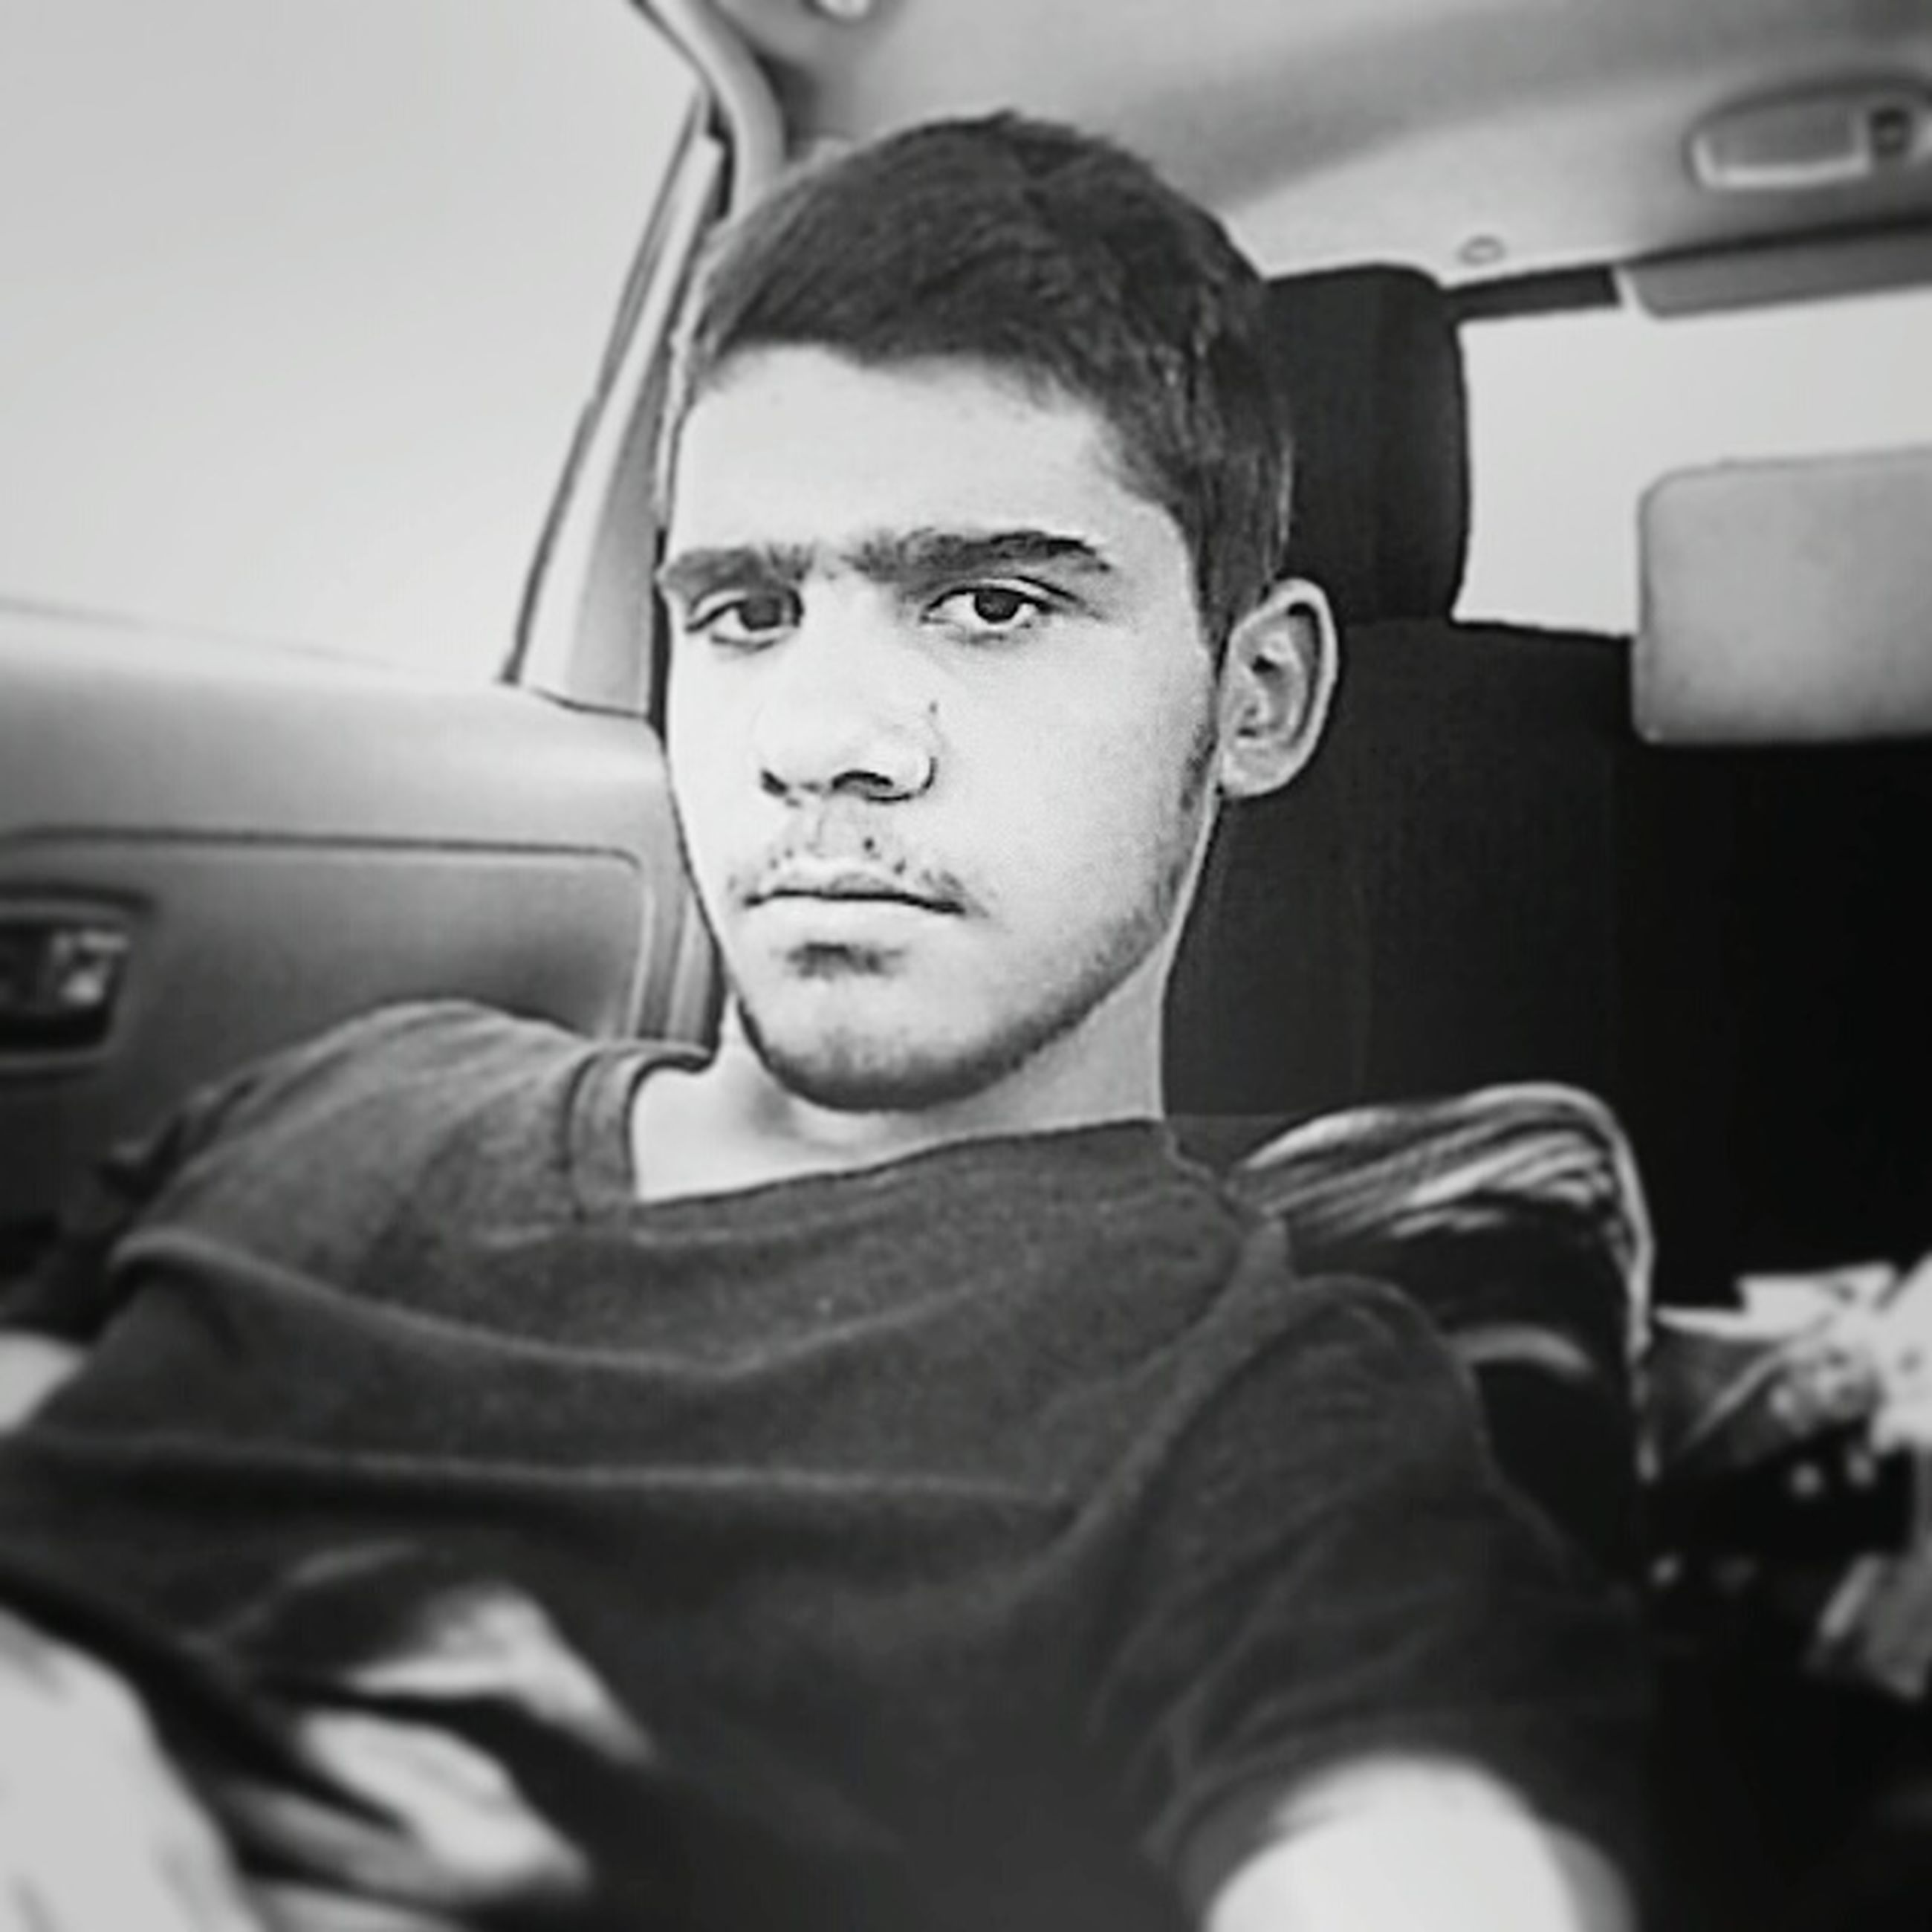 transportation, vehicle interior, indoors, lifestyles, headshot, portrait, mode of transport, looking at camera, car, person, land vehicle, young men, leisure activity, casual clothing, front view, young adult, car interior, close-up